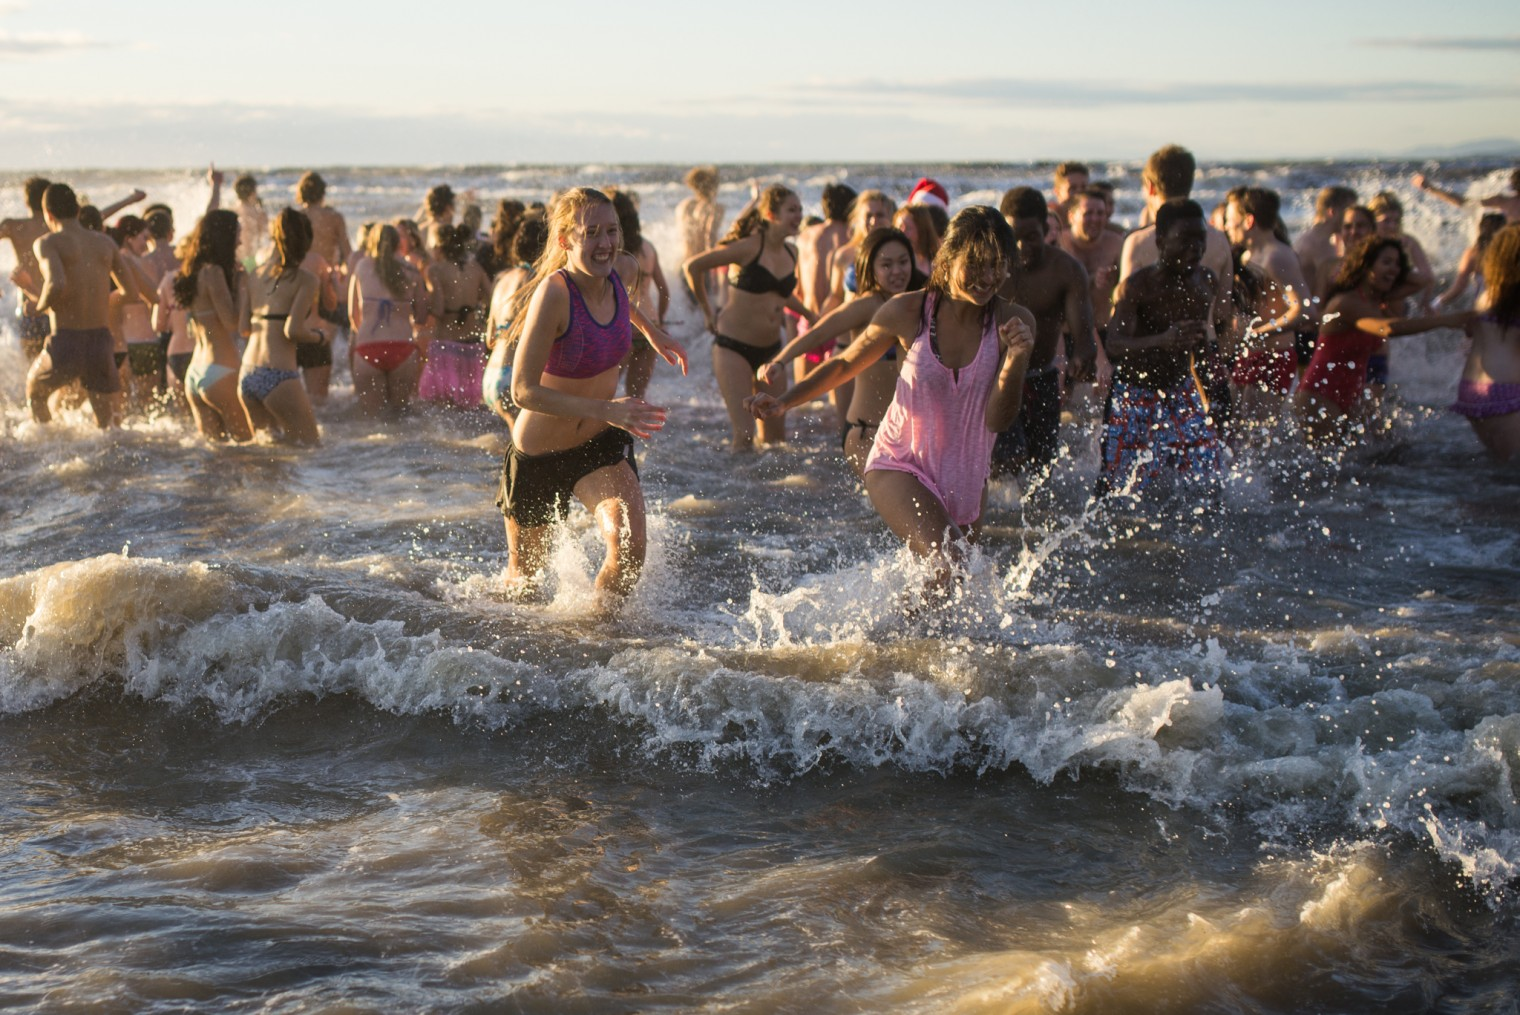 Students run out of the cold ocean water during the Polar Bear Swim at Wreck Beach